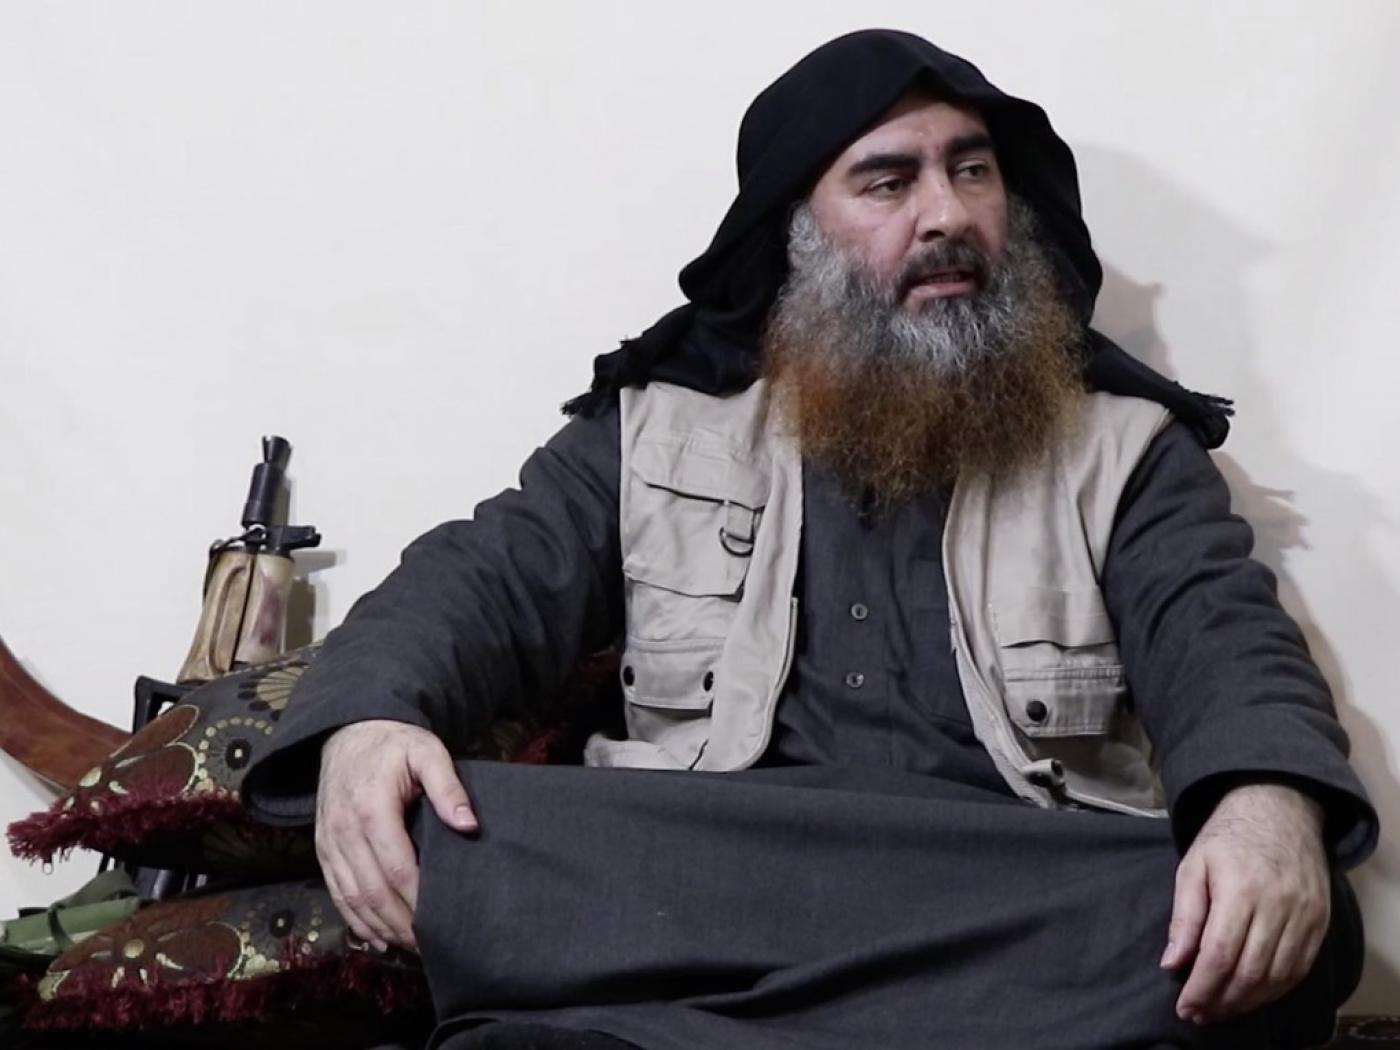 Iraq Says IS Remains Threat, Leader Baghdadi Filmed Video in 'Remote Area'